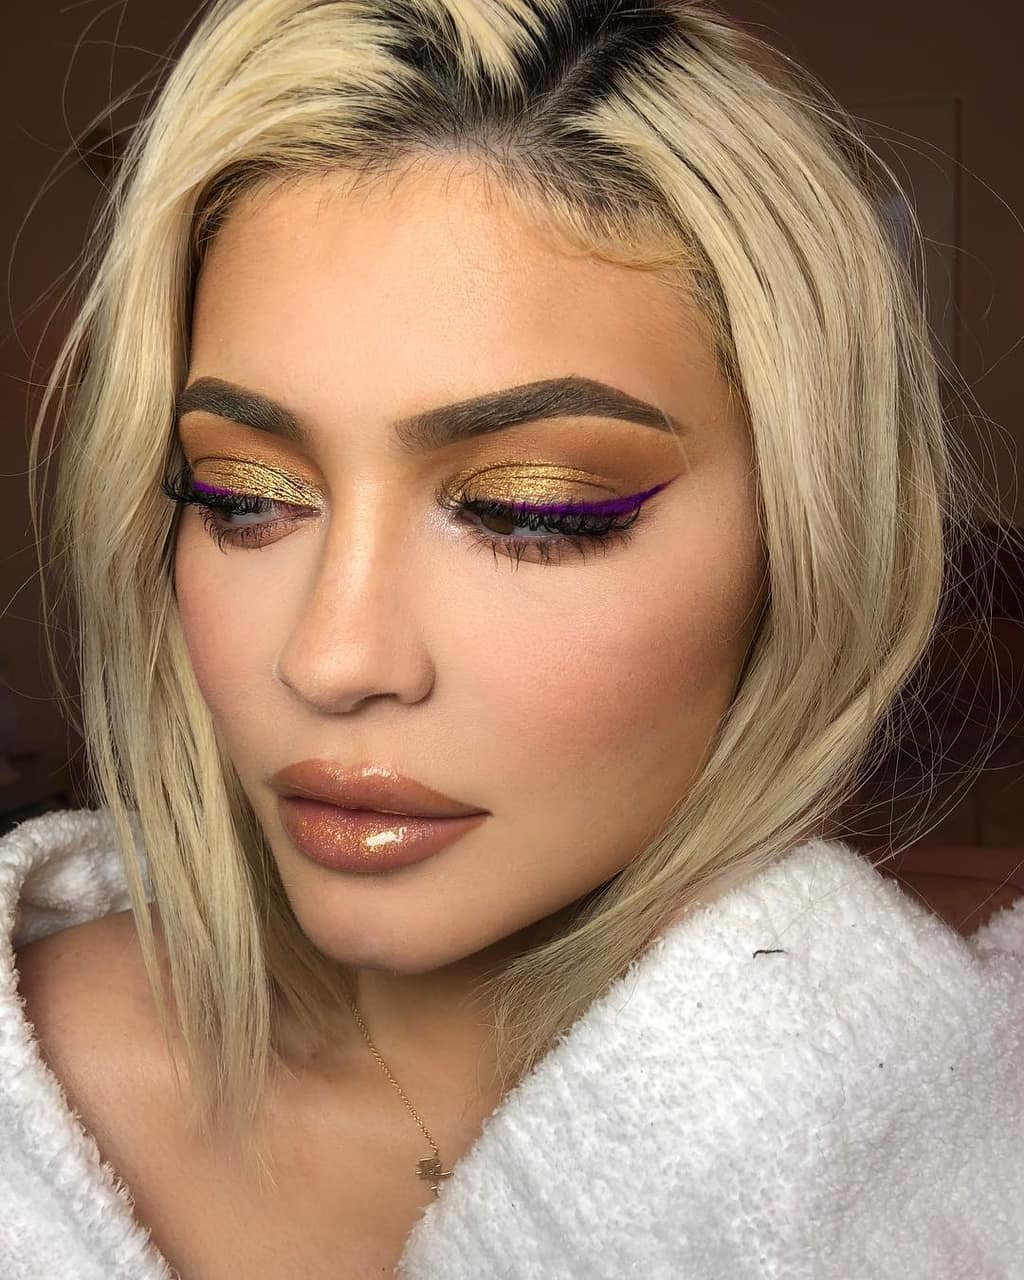 kylie jenner style, style, kylie jenner hair , image